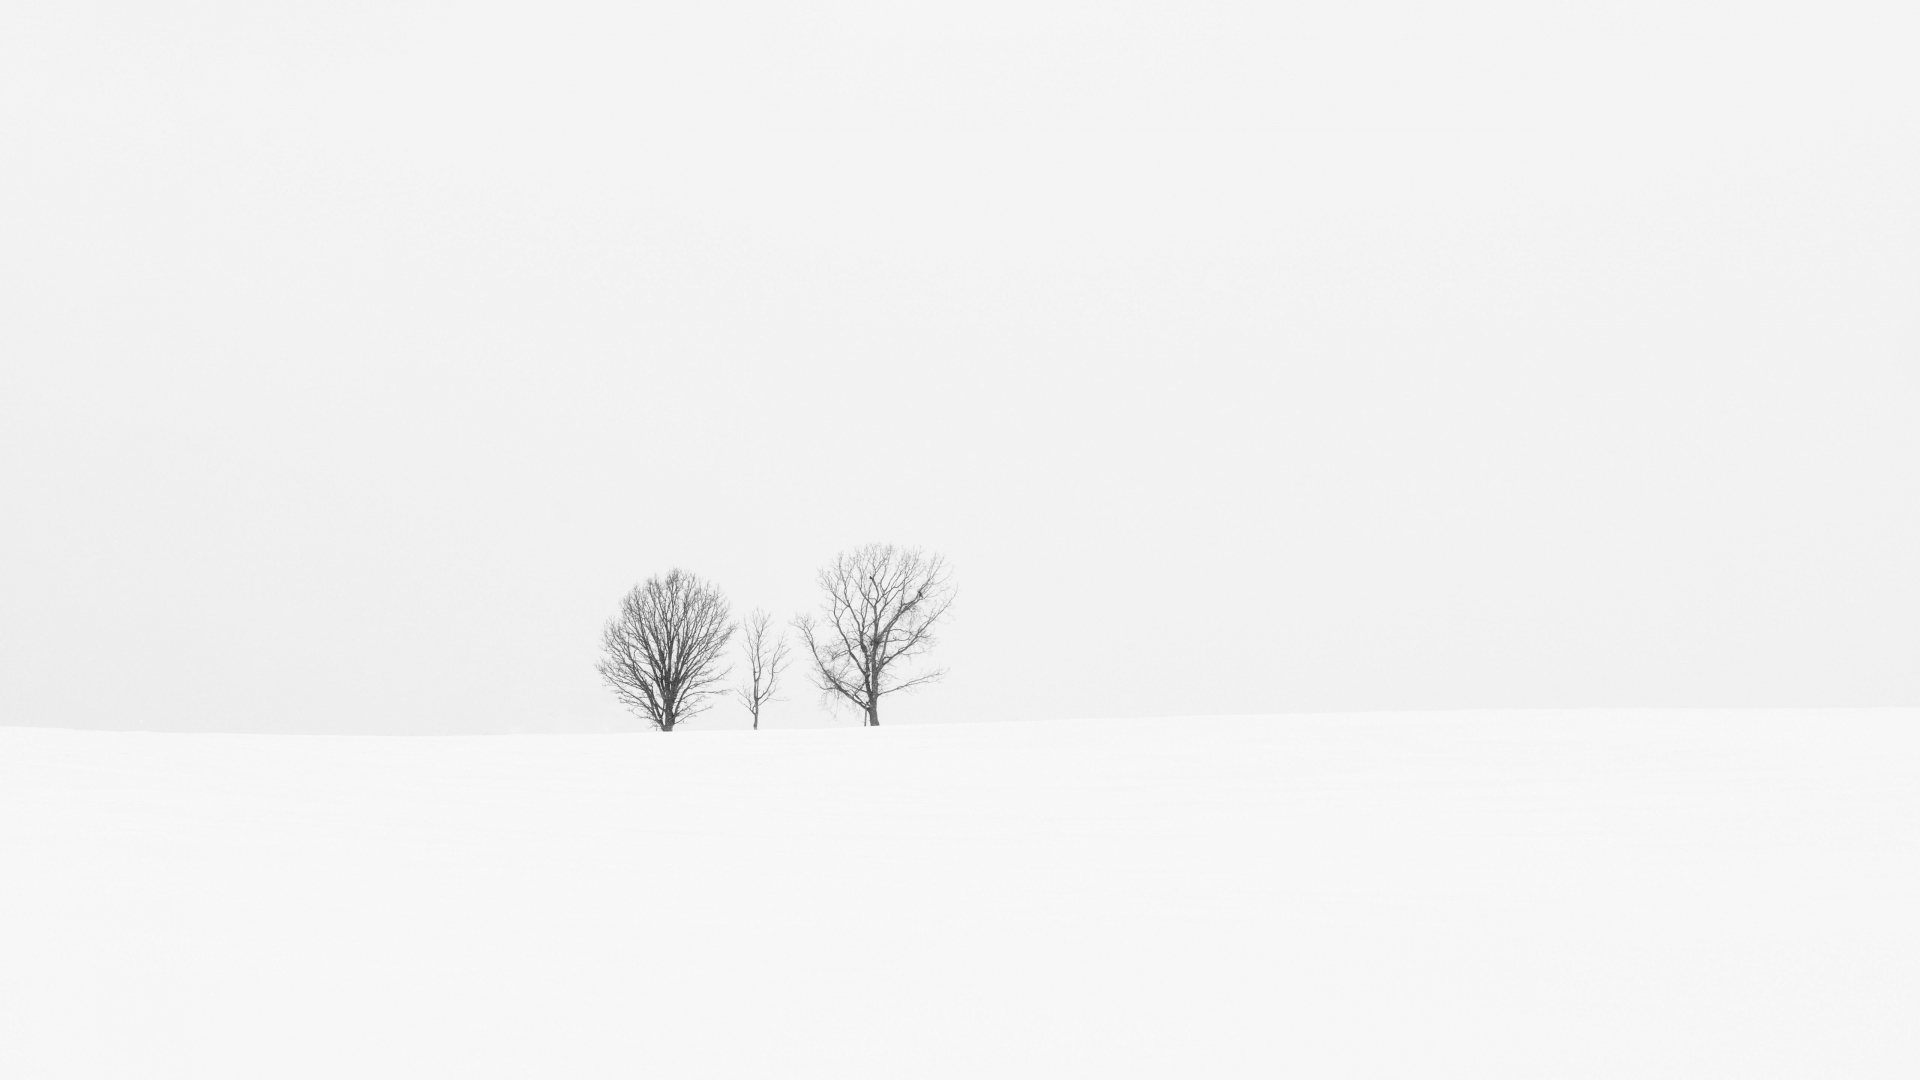 Free Download White Minimalist Desktop Wallpapers Top White Minimalist 5120x3200 For Your Desktop Mobile Tablet Explore 46 White Minimalist Wallpapers White Minimalist Wallpapers Minimalist Backgrounds Minimalist Wallpapers